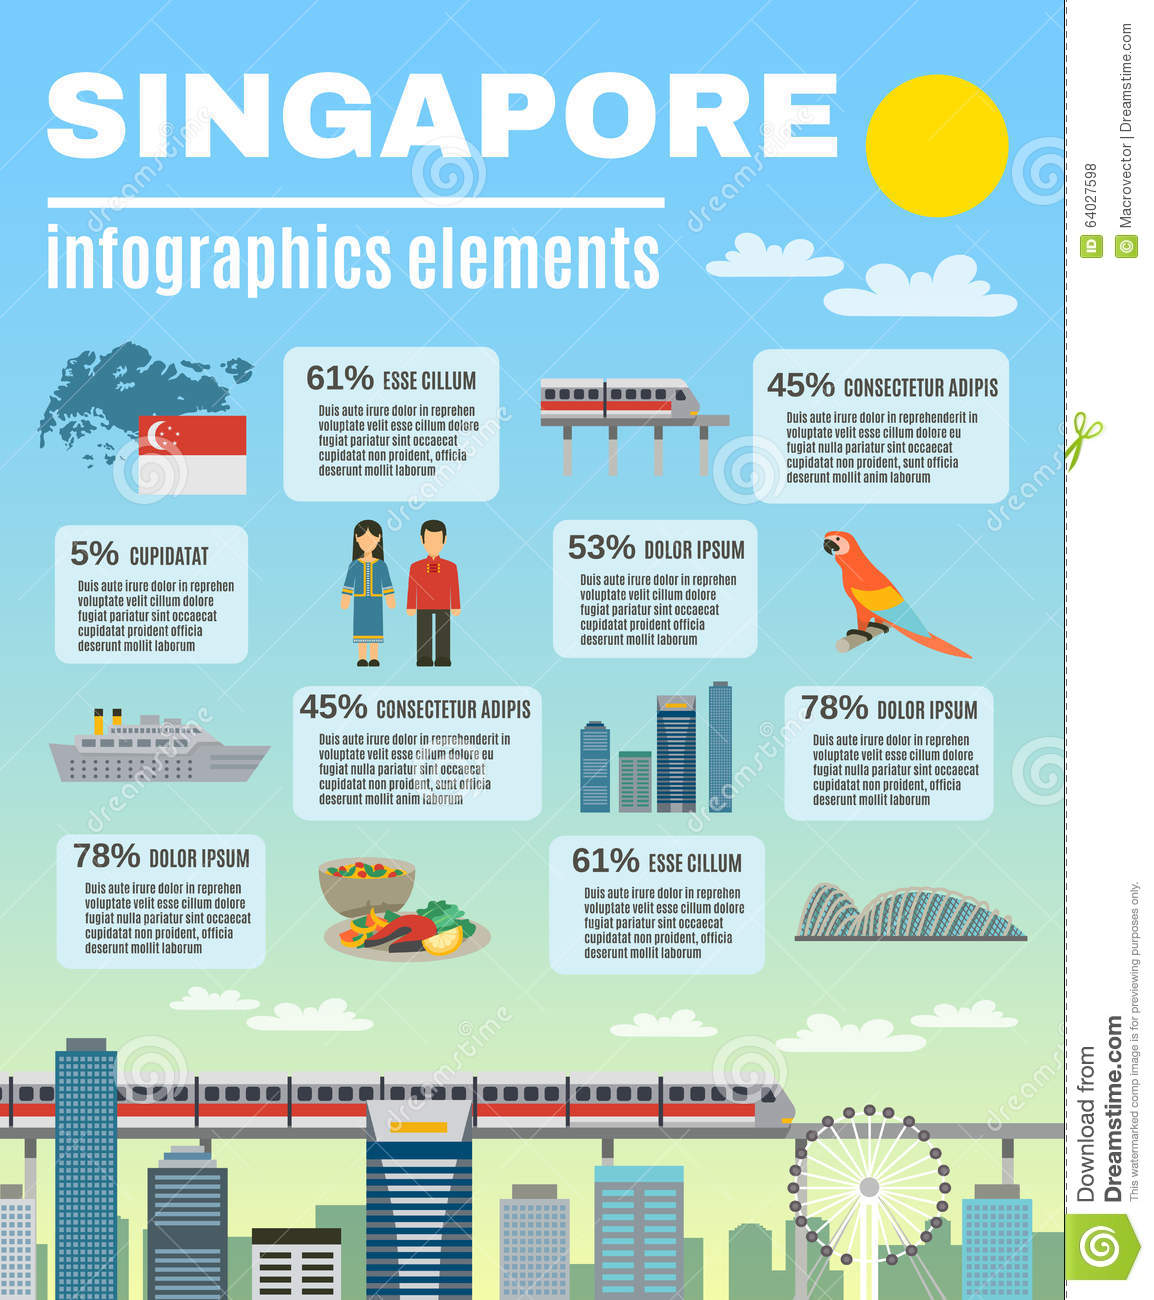 culture of singapore Singapore has a wonderful melange of different cultures and traditions created  by the various different ethnic groups that moved to singapore.